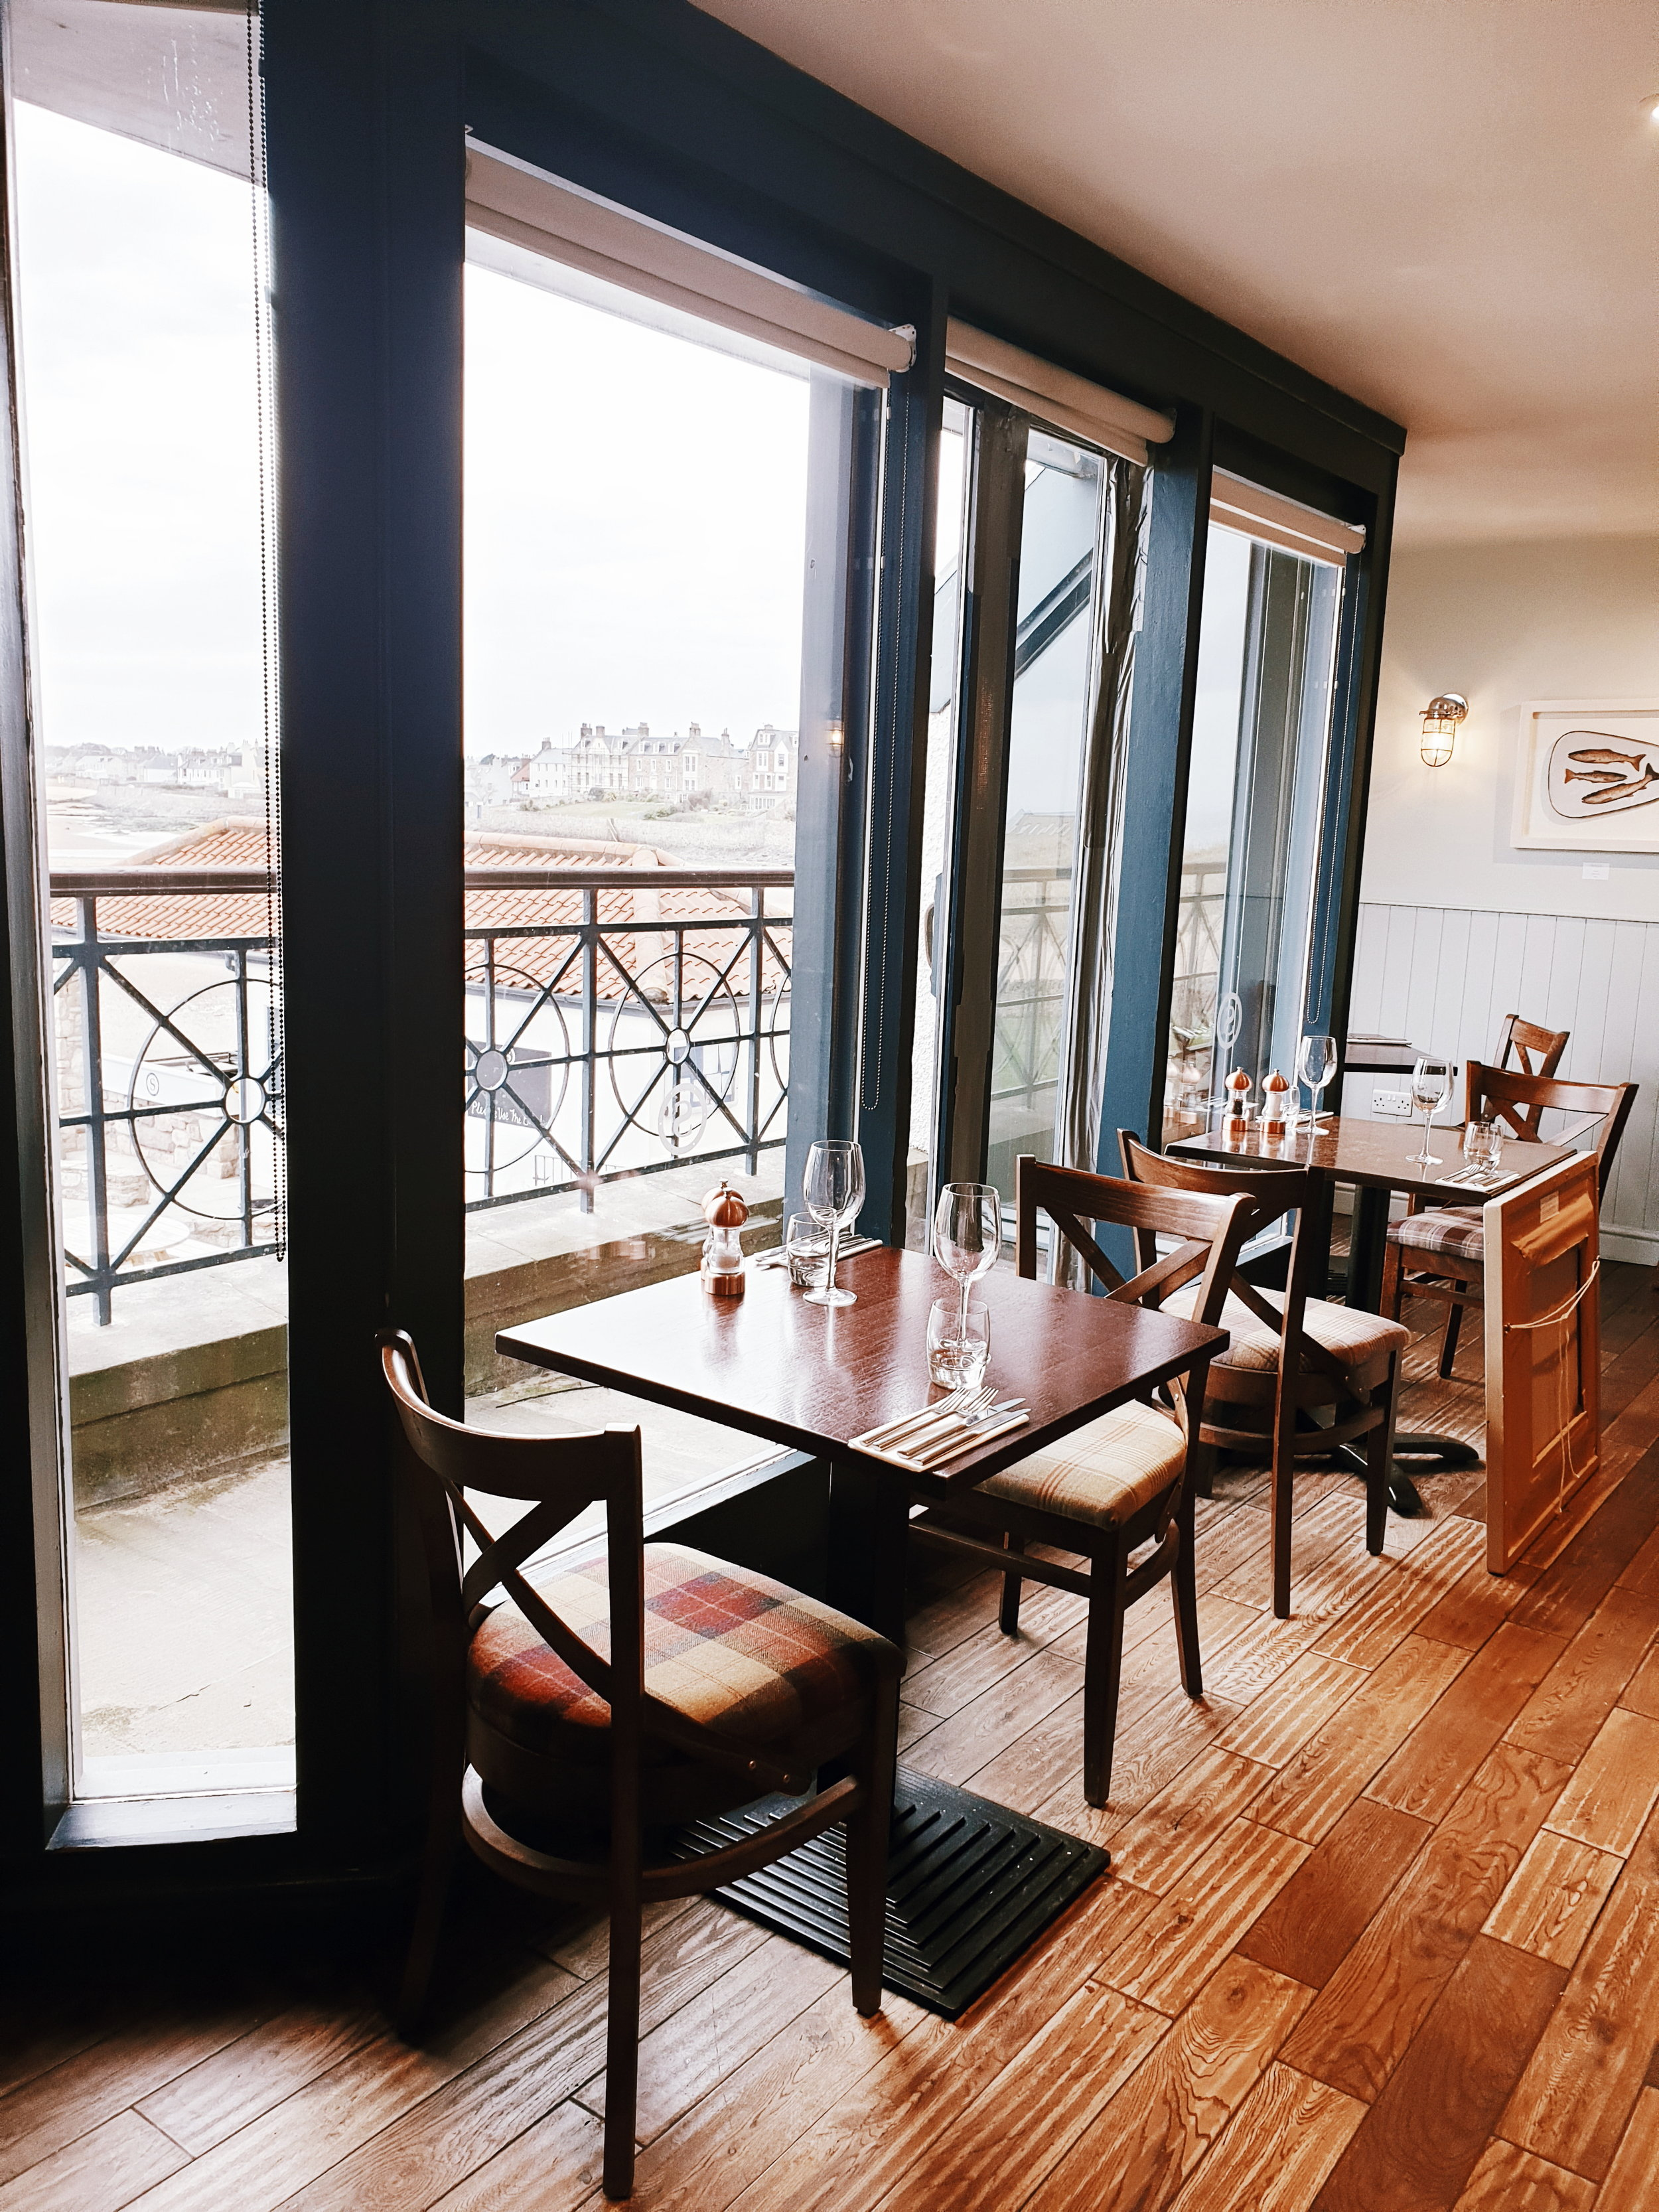 The upstairs dining room with great views of the beach